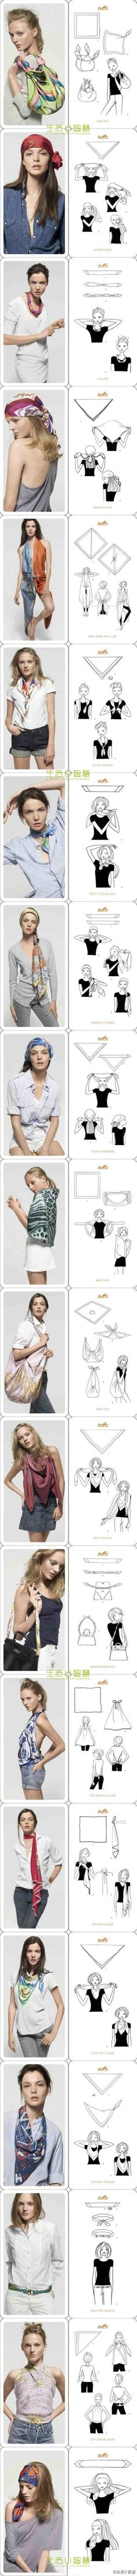 women's fashion: 20 useful ways to use ordinary scarf